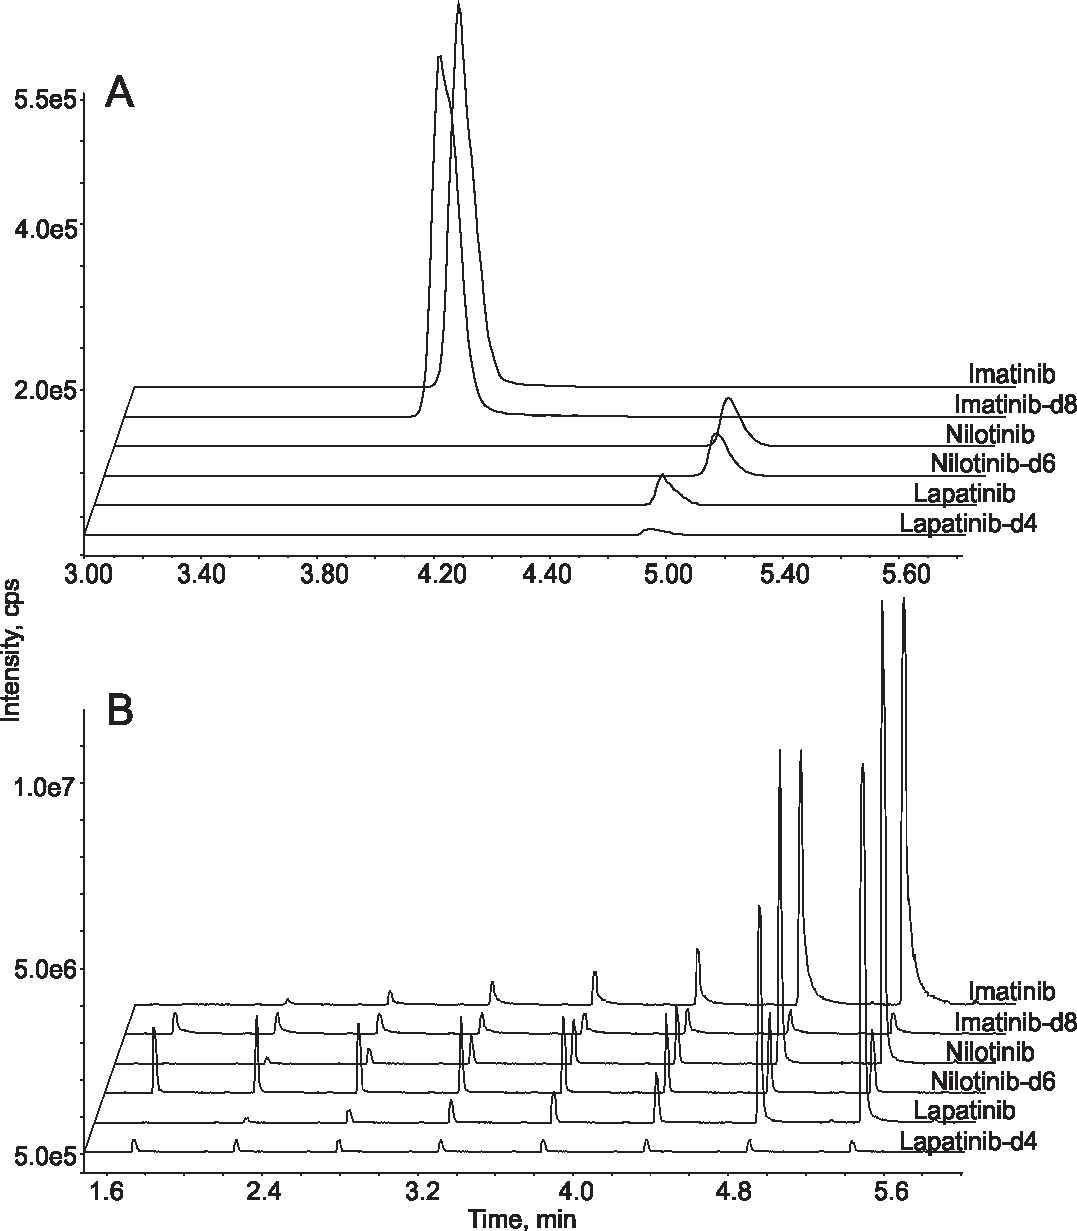 Comparison between LC-MS/MS and online SPE-MS/MS. Extracted ion chromatograms from the analysis of standard samples containing three tyrosine kinase inhibitors and their deuterated internal standards by conventional LC-MS/MS system (A) and online SPE-MS/MS system (B). In the former case the analytes were separated from each other on a chromatographic column so only one sample was analysed in 6 min. In the latter case analytes were eluted from the SPE cartridge at the same time. The analysis of one sample took less than 30 sec and 8 samples were analysed in less than 6 min.